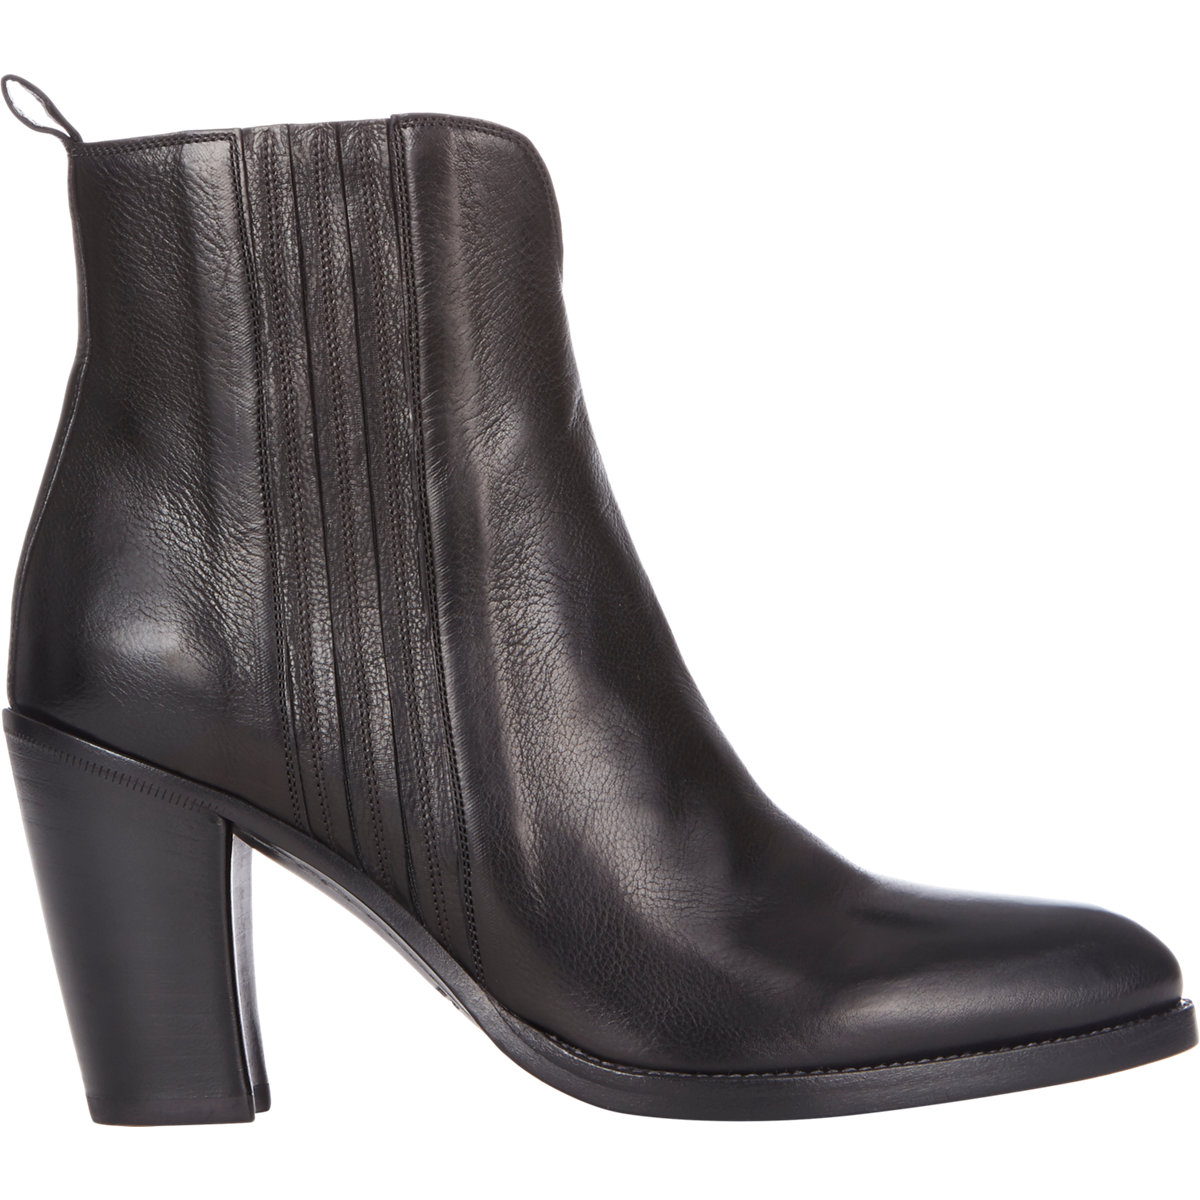 outlet with paypal Sartore Leather Ankle Boots discount buy HxfyV